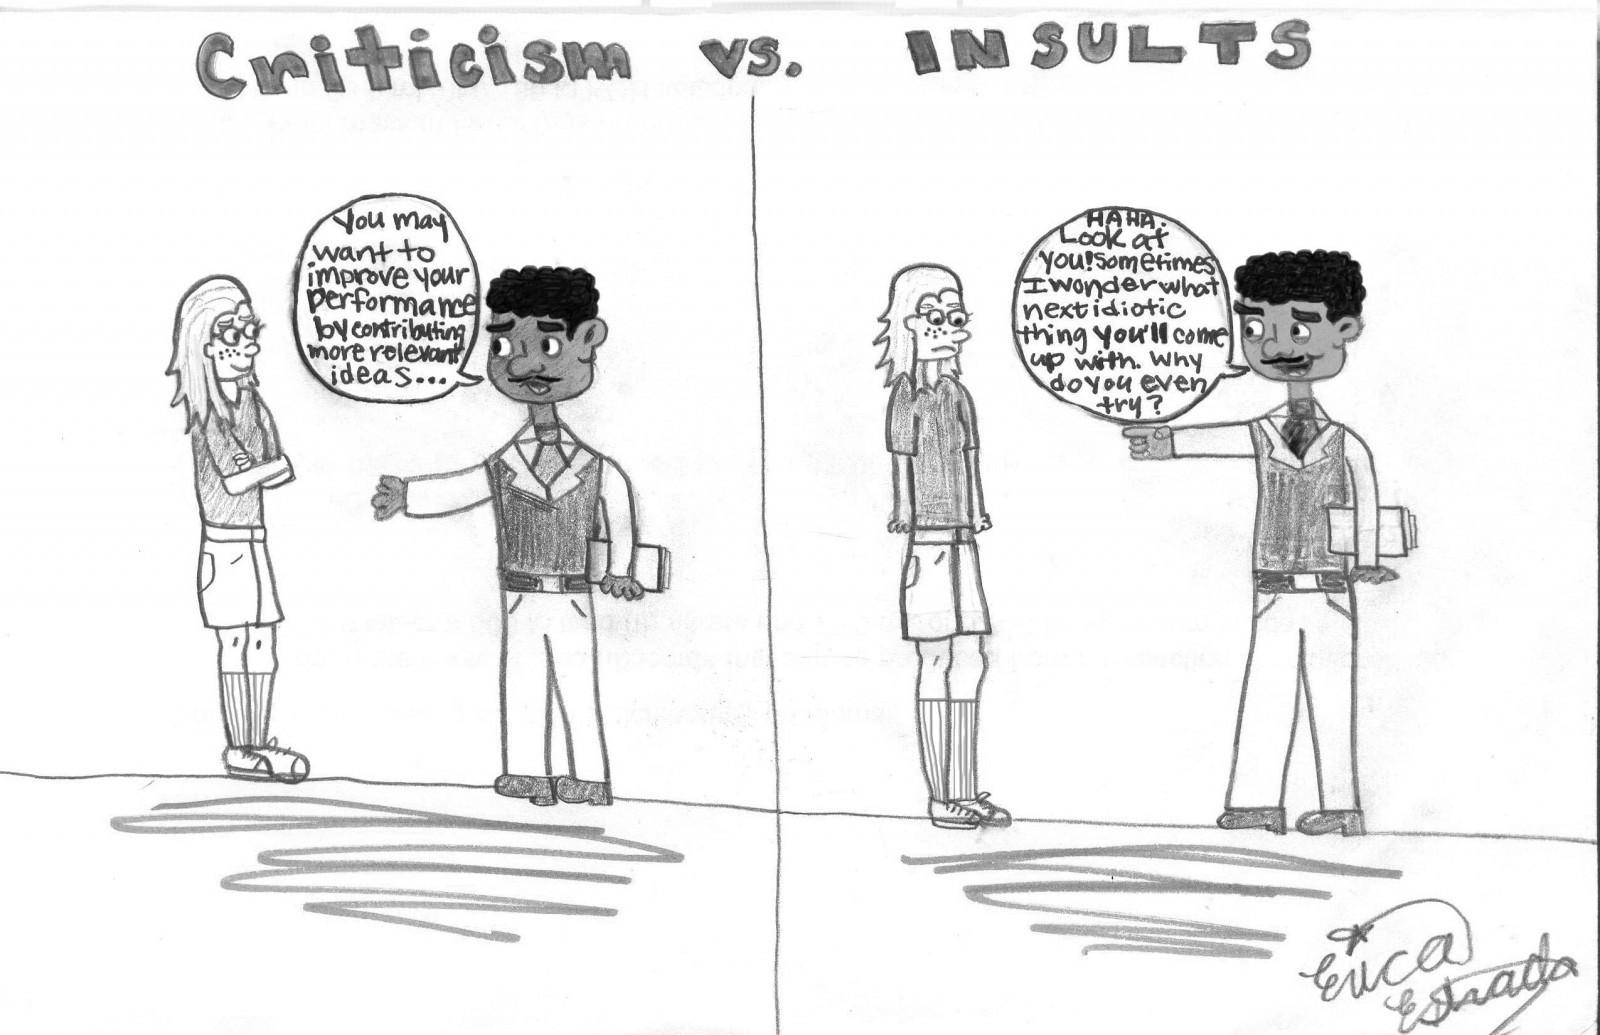 Know The Difference Between Criticism And Insults